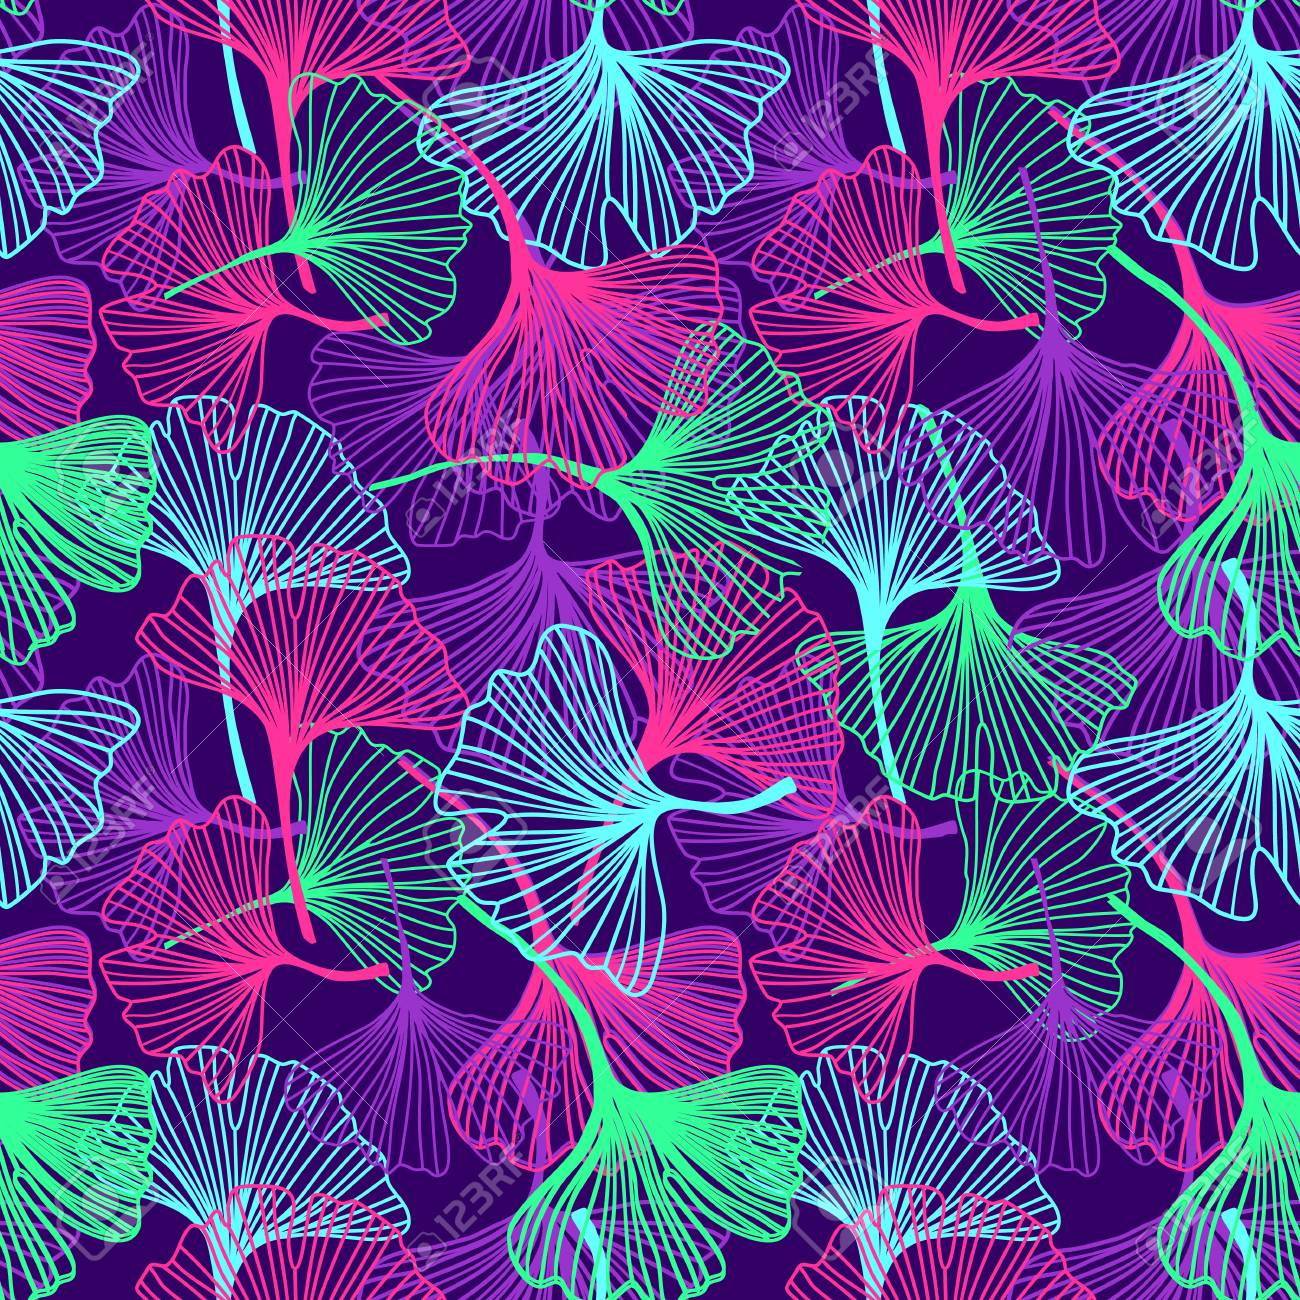 Floral Flowers And Leaves Background In Neon Colors Bright Print